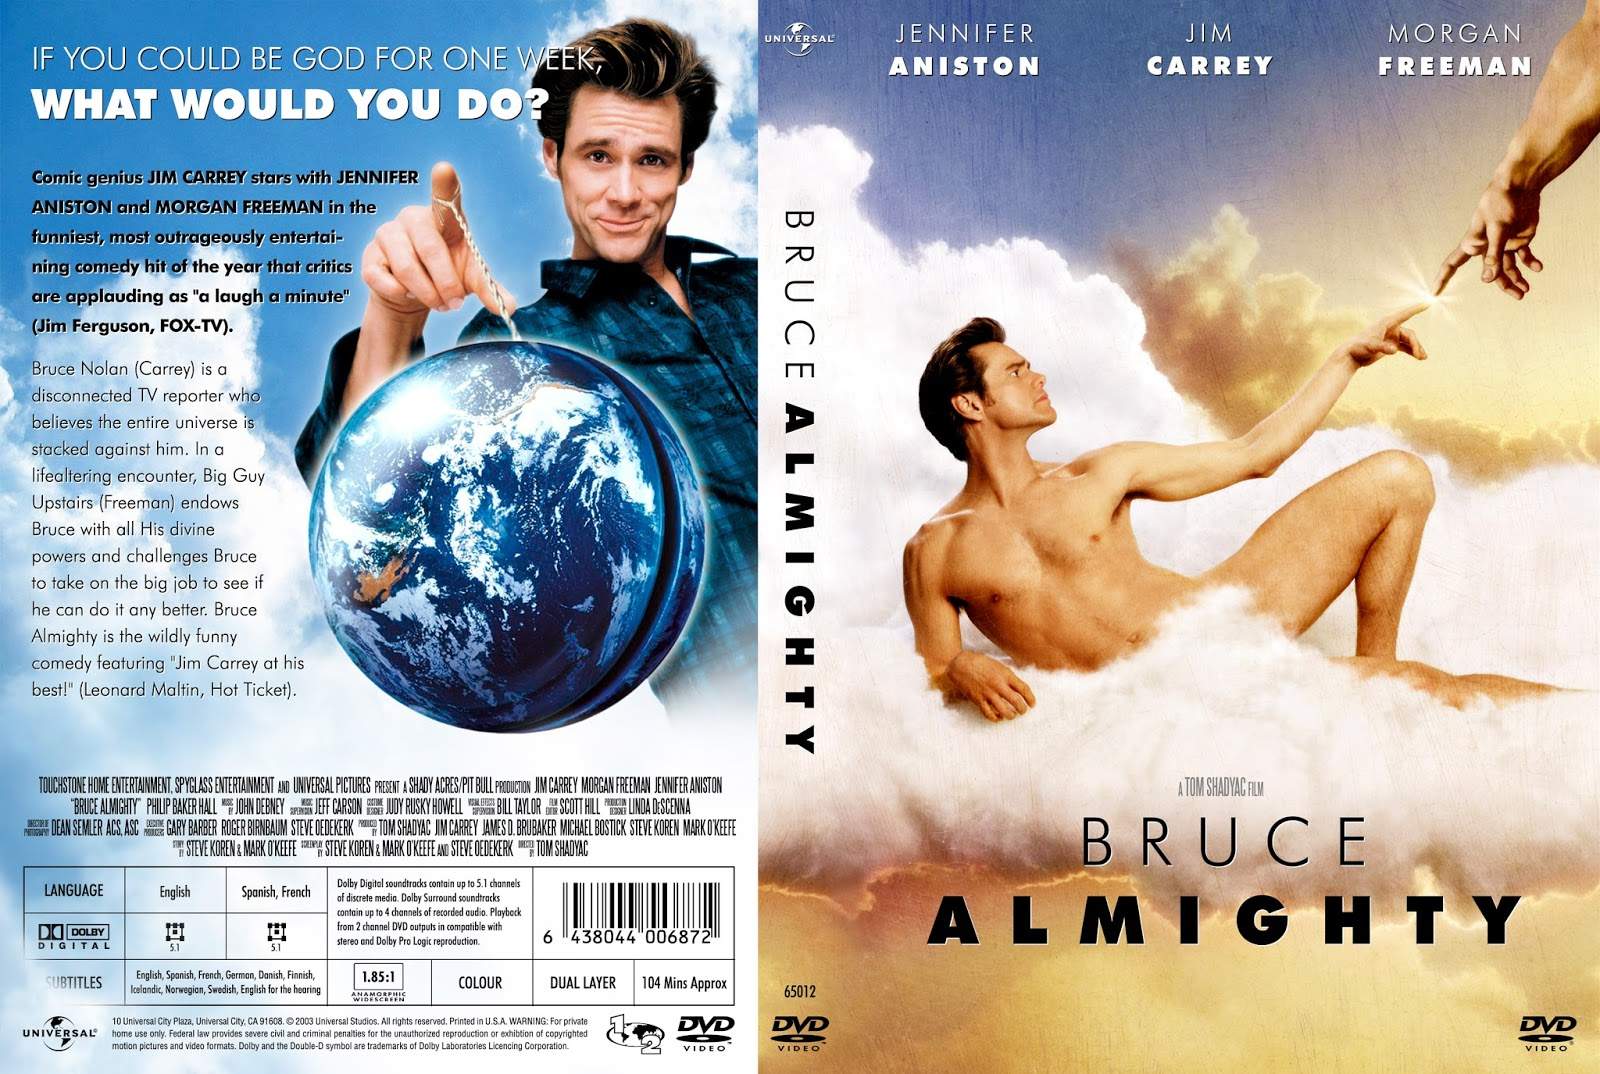 Movies Unlimited Bruce Almighty 2003 American Fantasy Comedy Film Jim Carrey